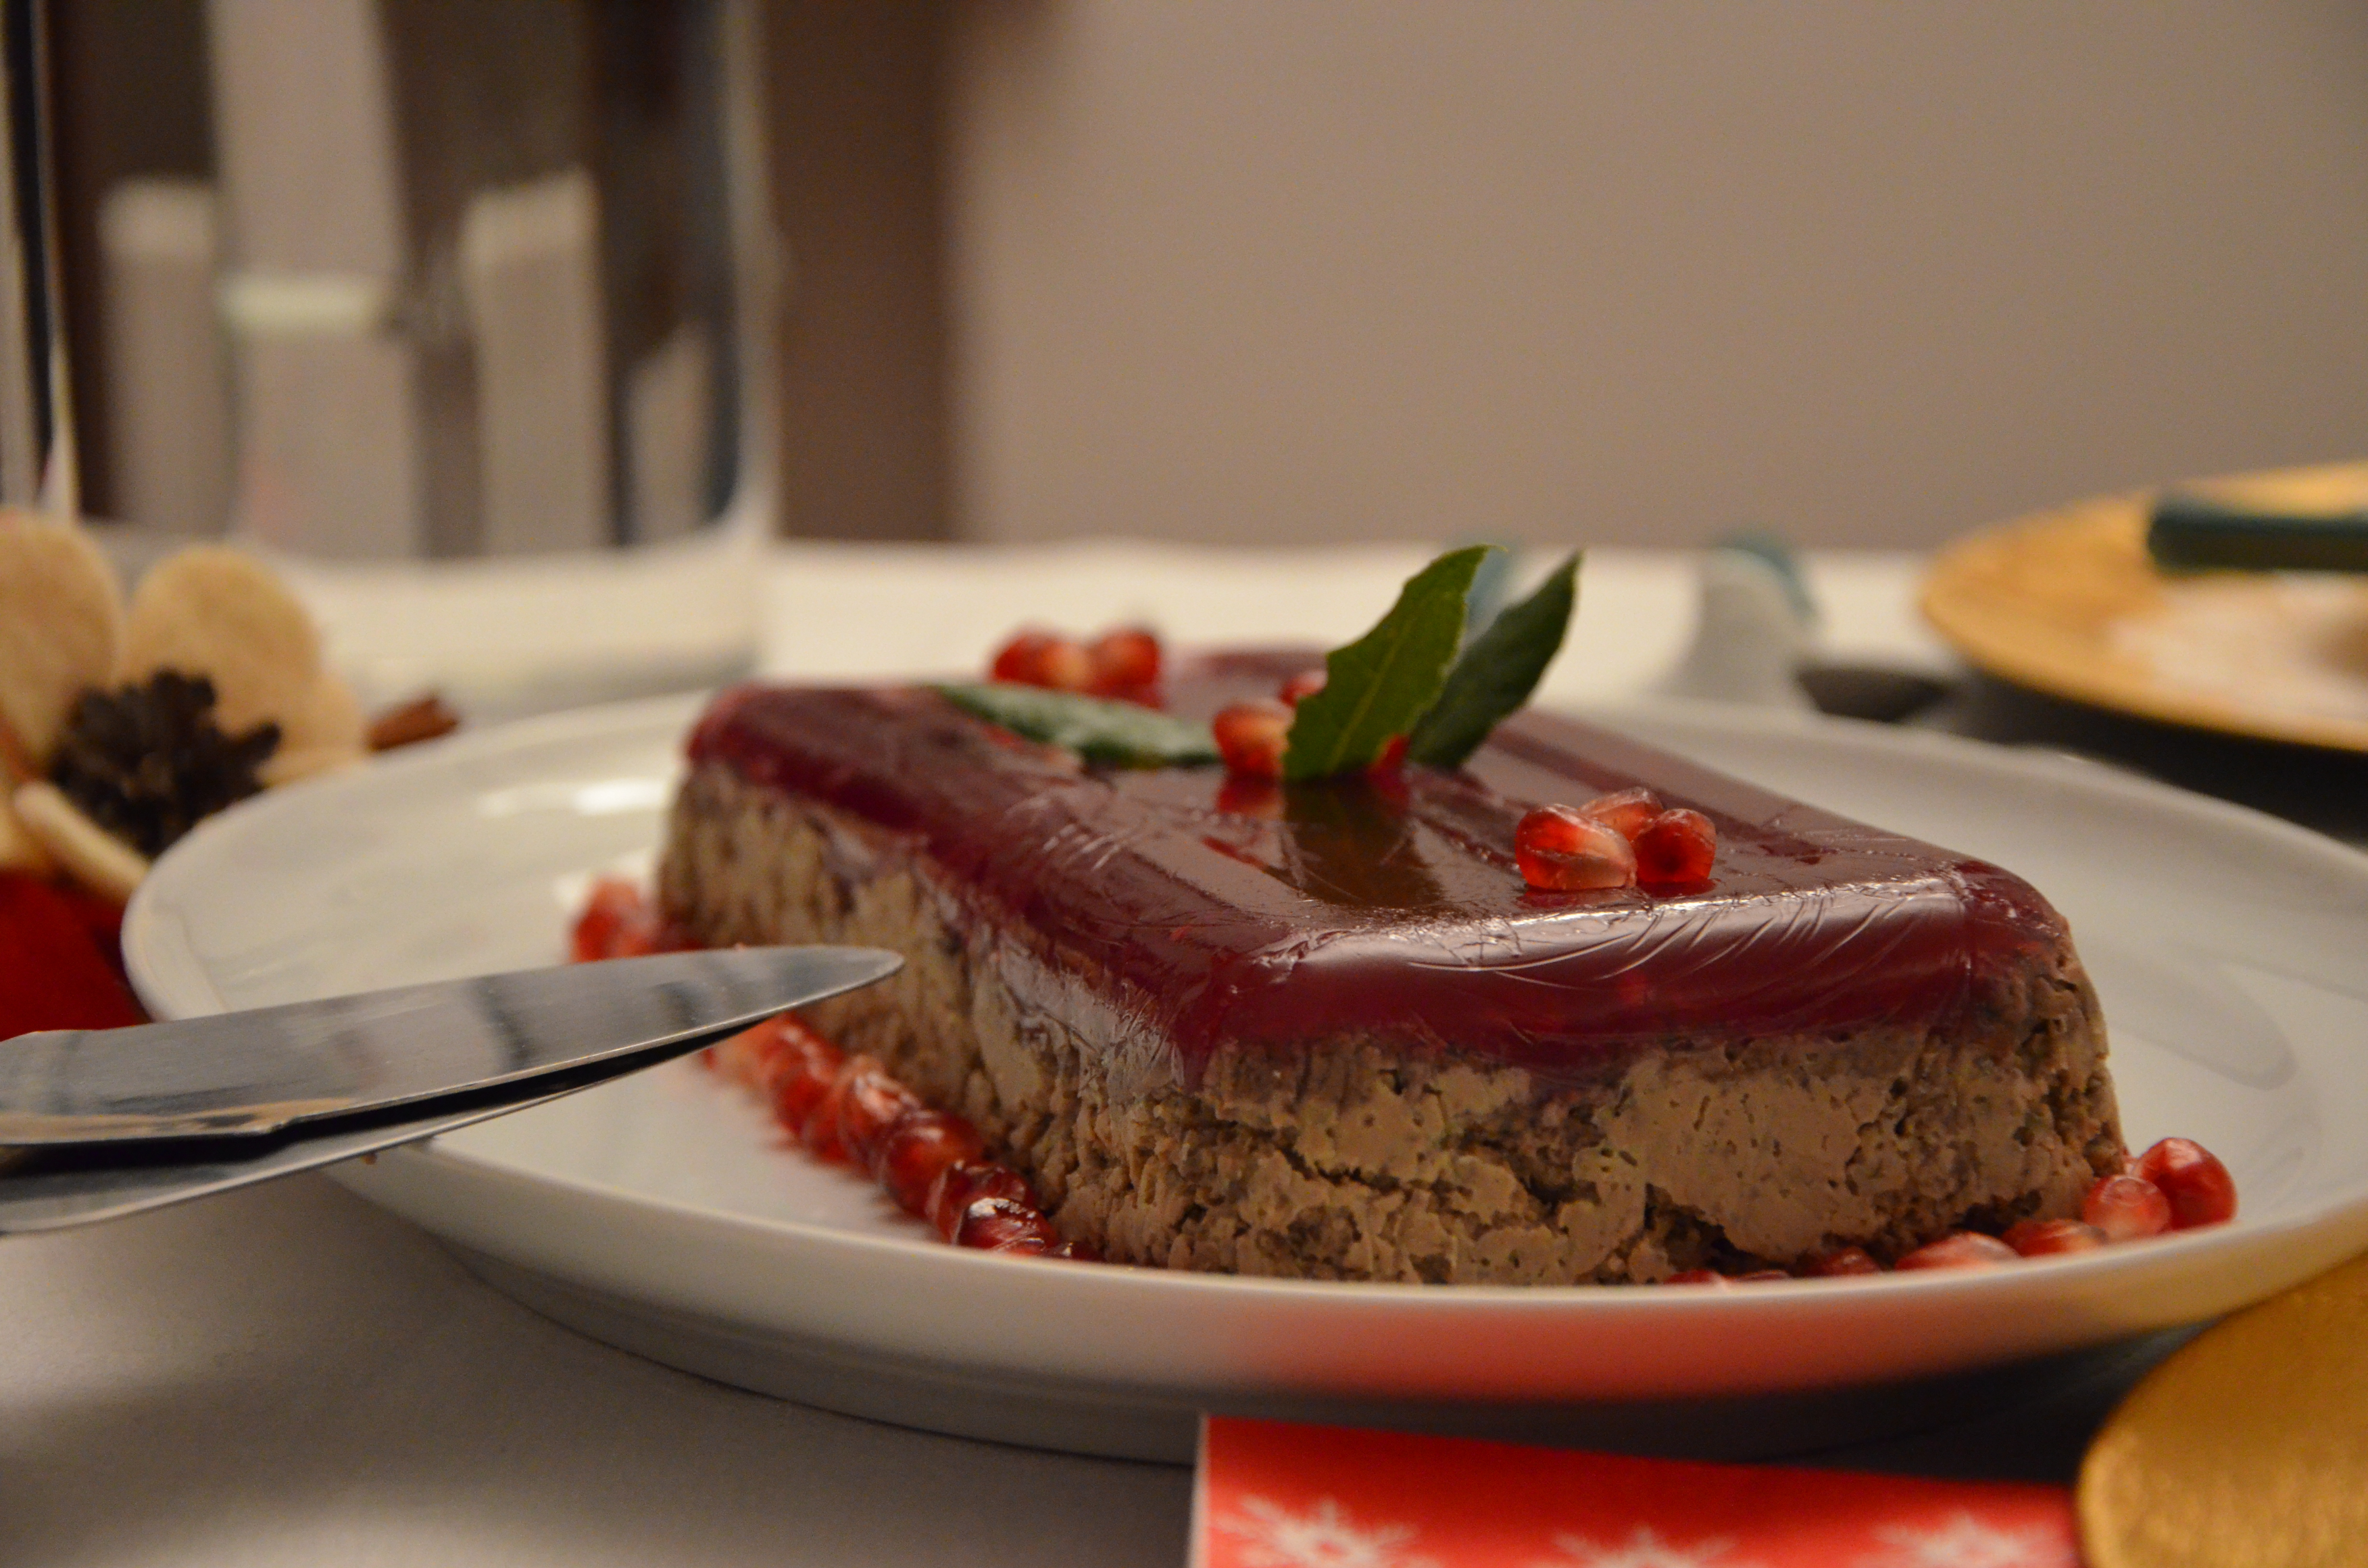 Liver pate with pomegranate jelly